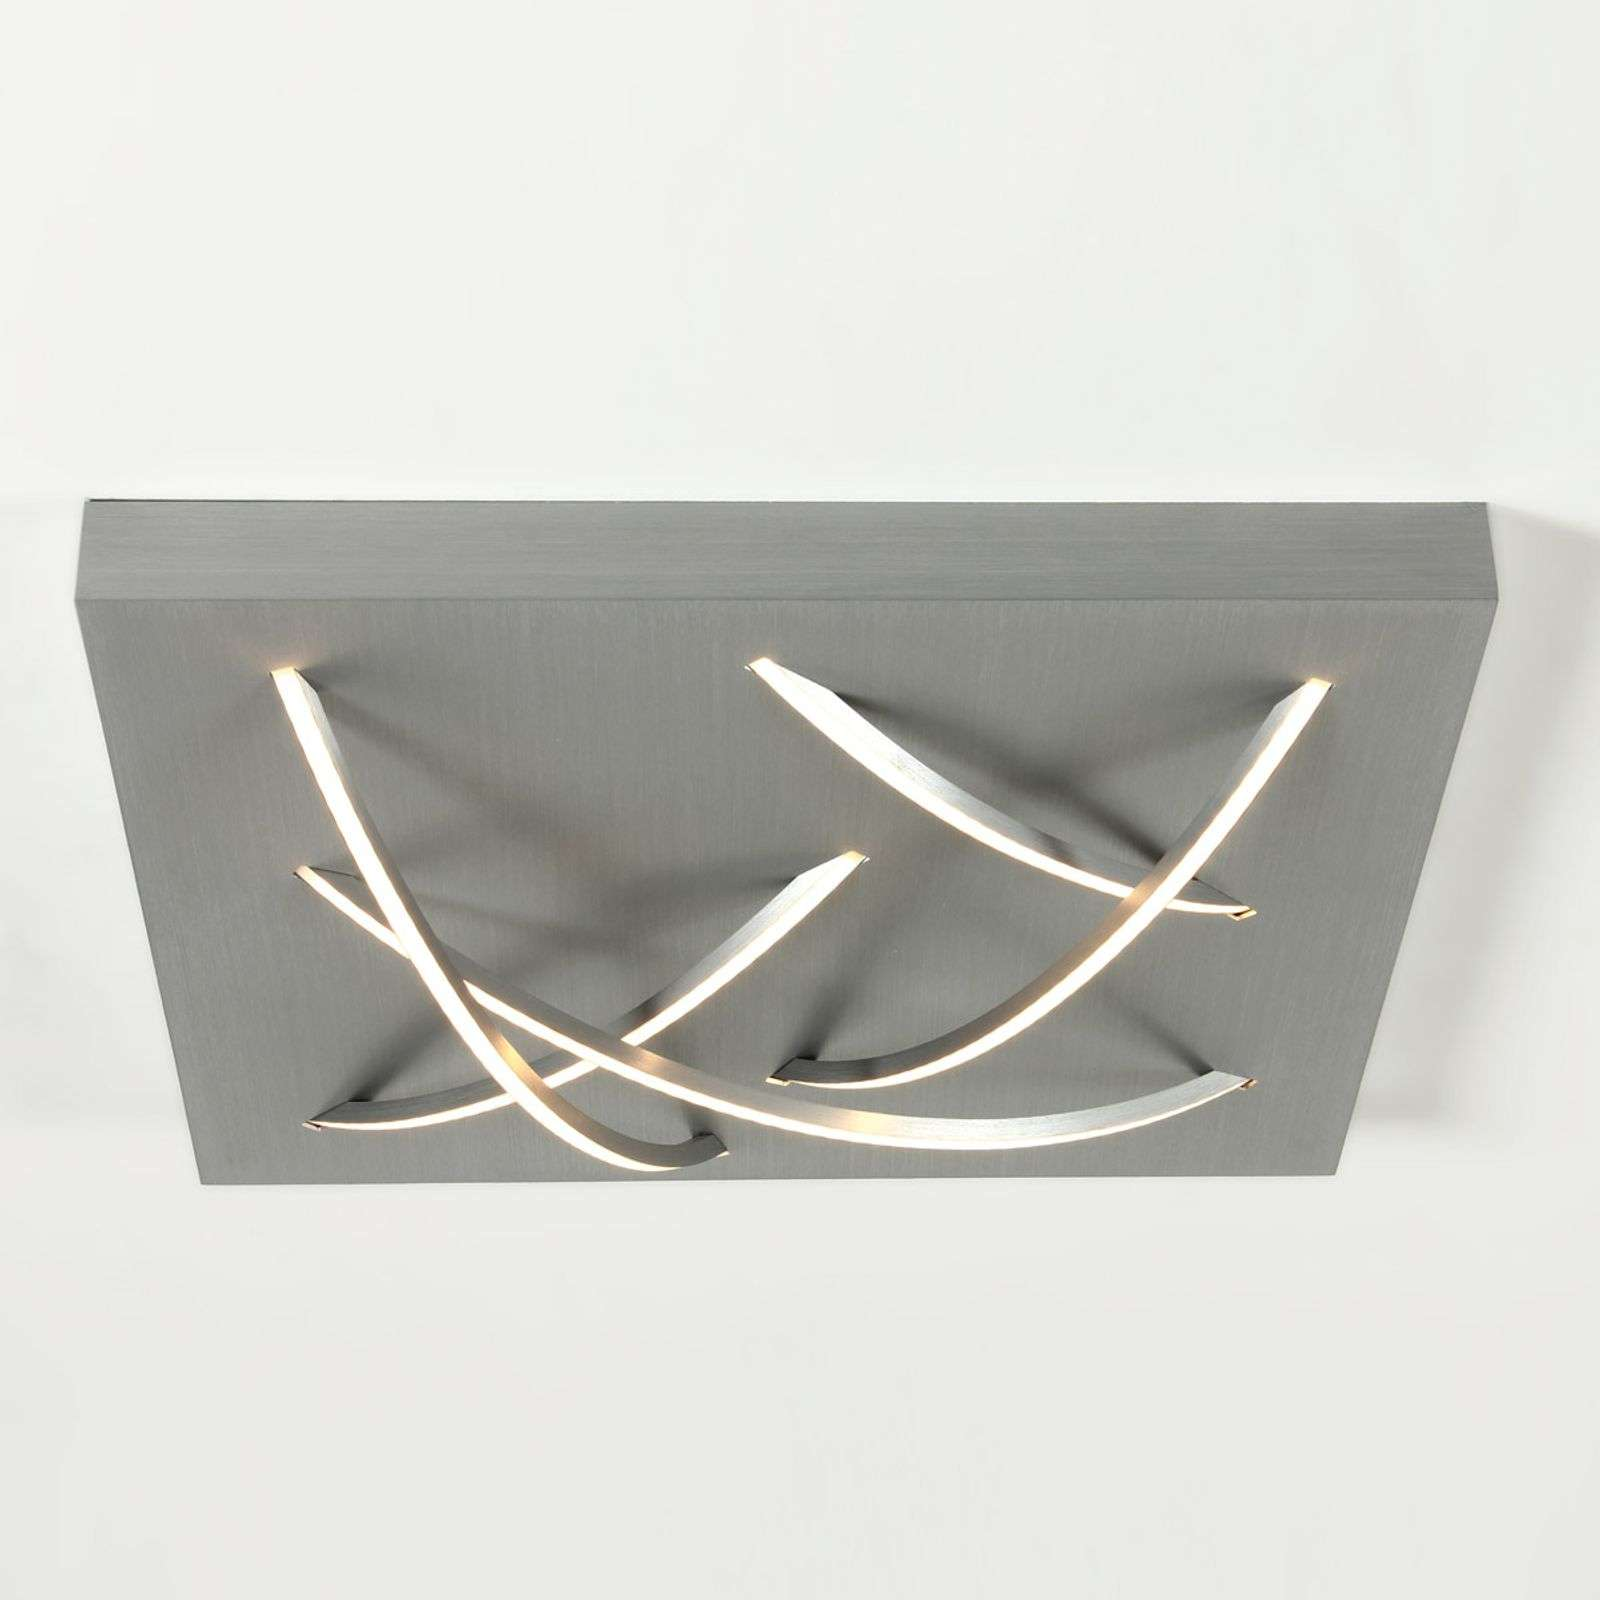 Plafonnier LED Curved carré, aluminium